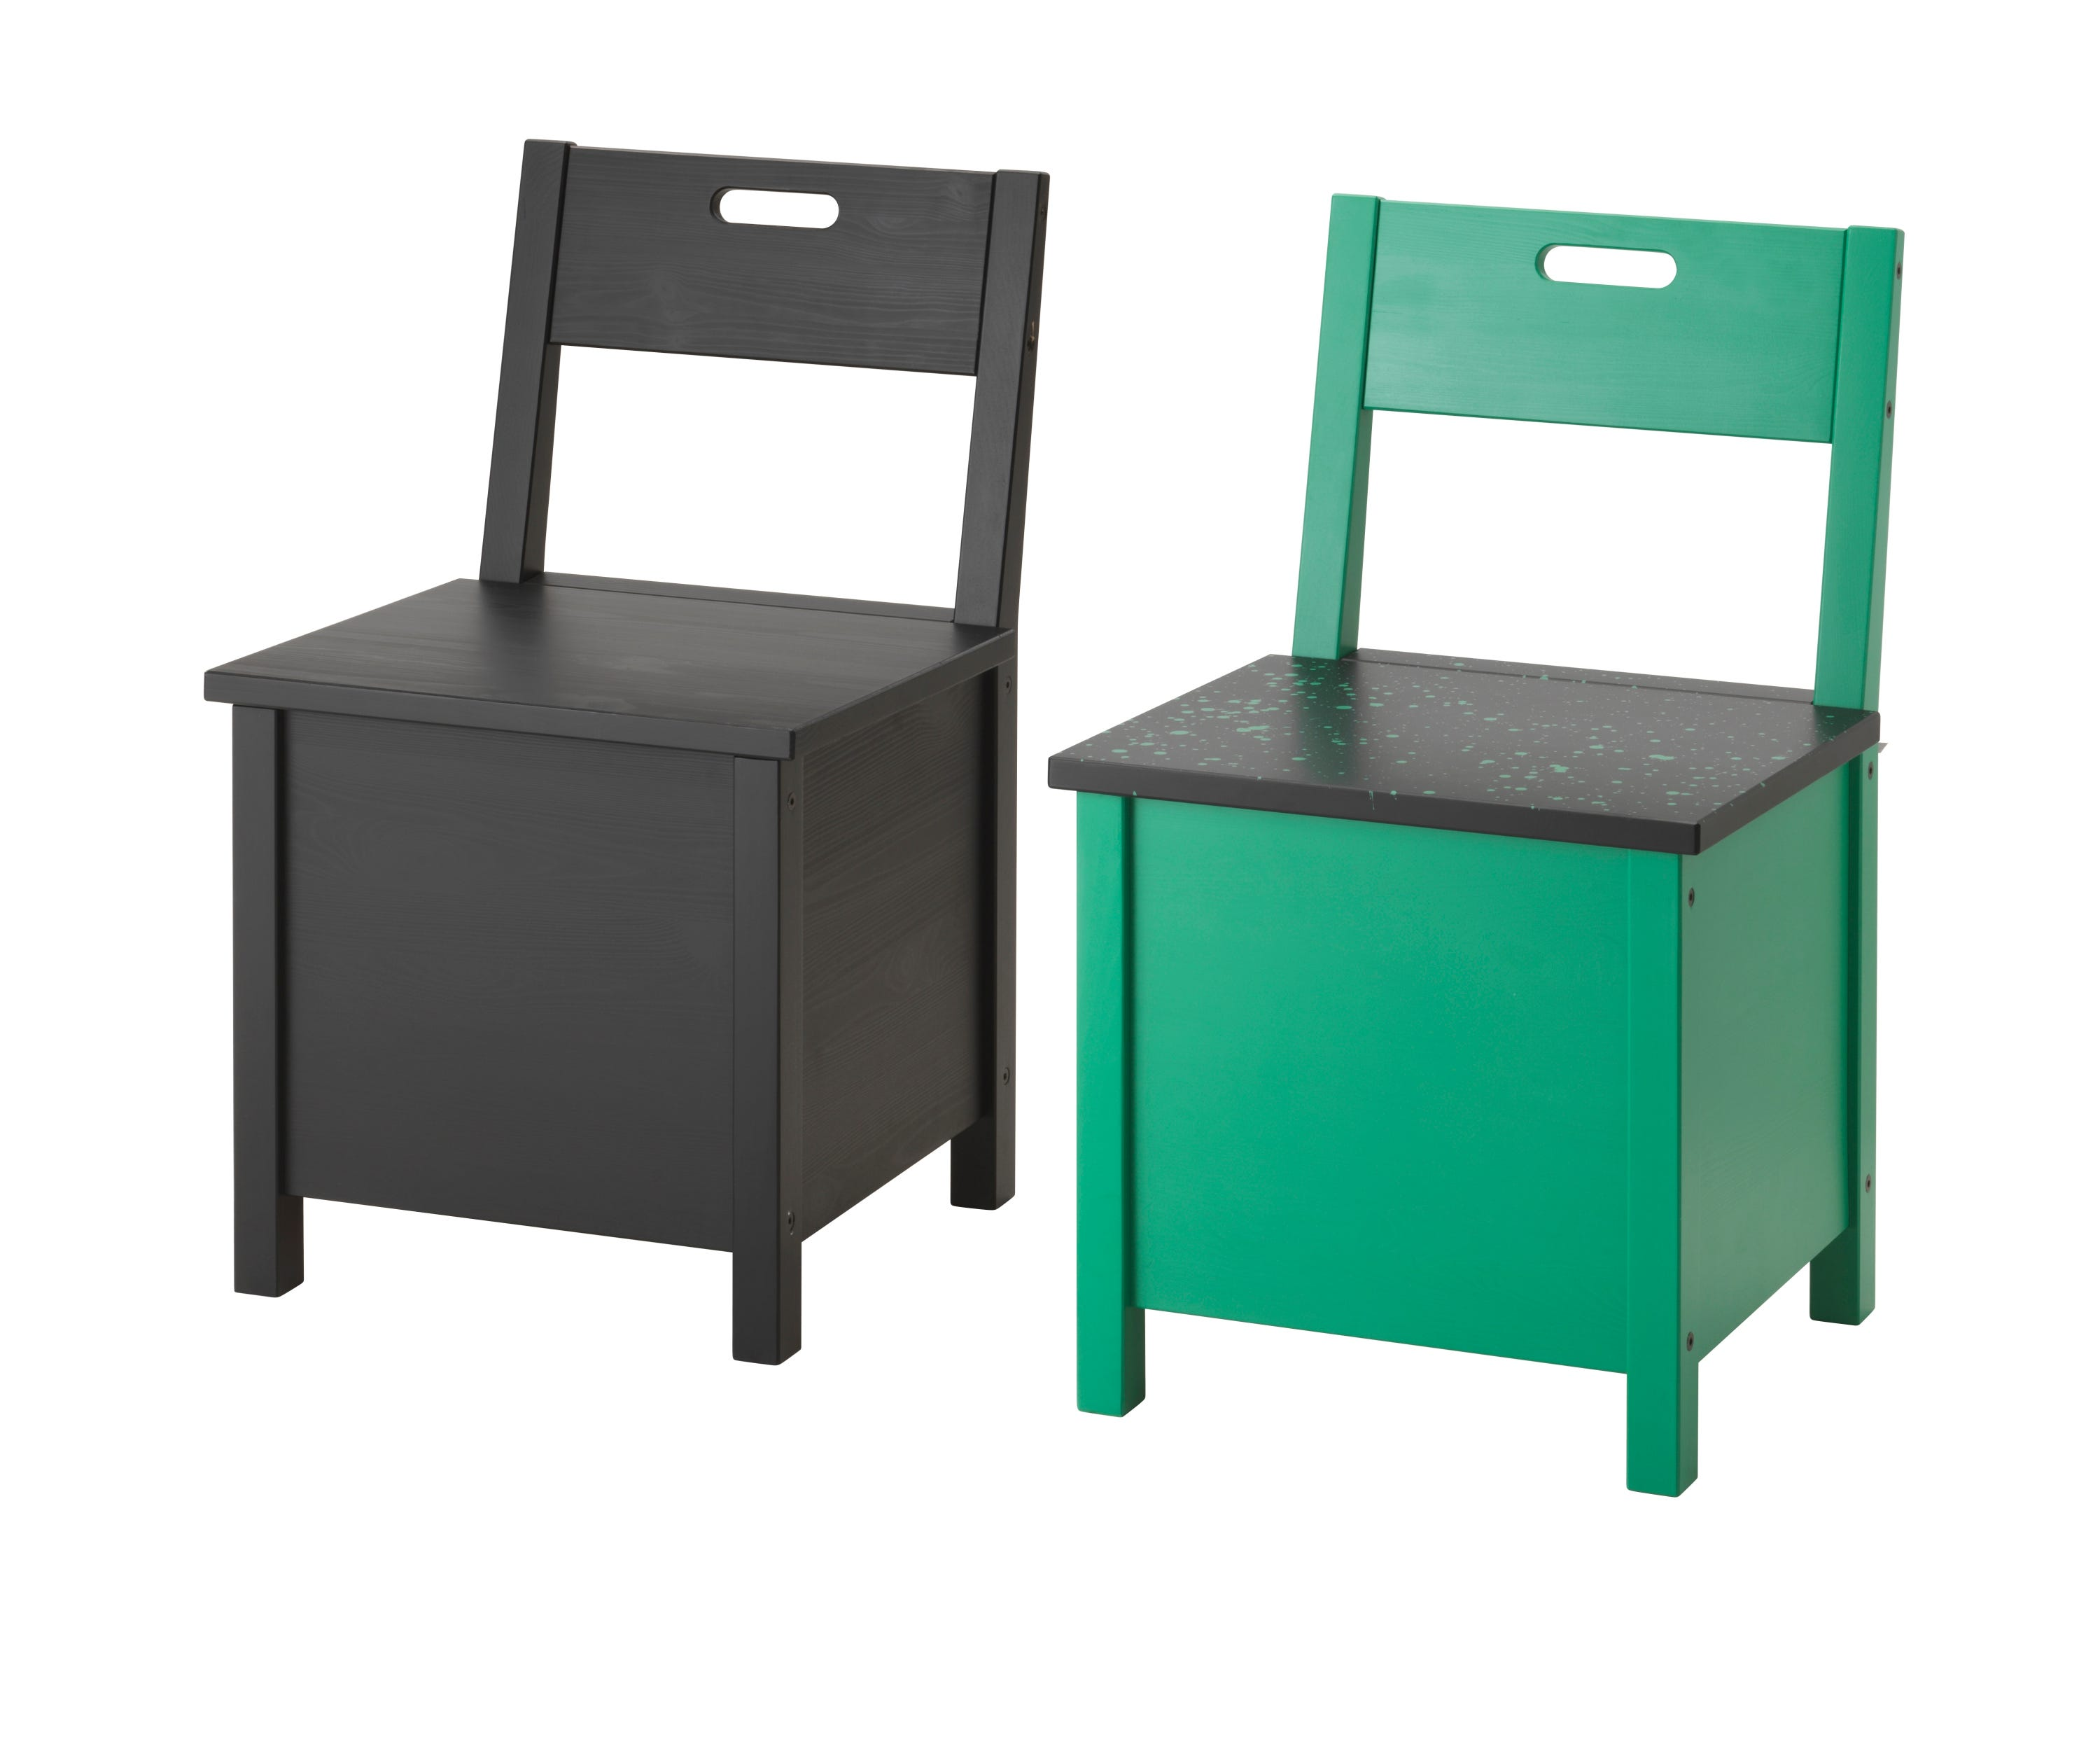 Ikea sallskap limited edition furniture collection